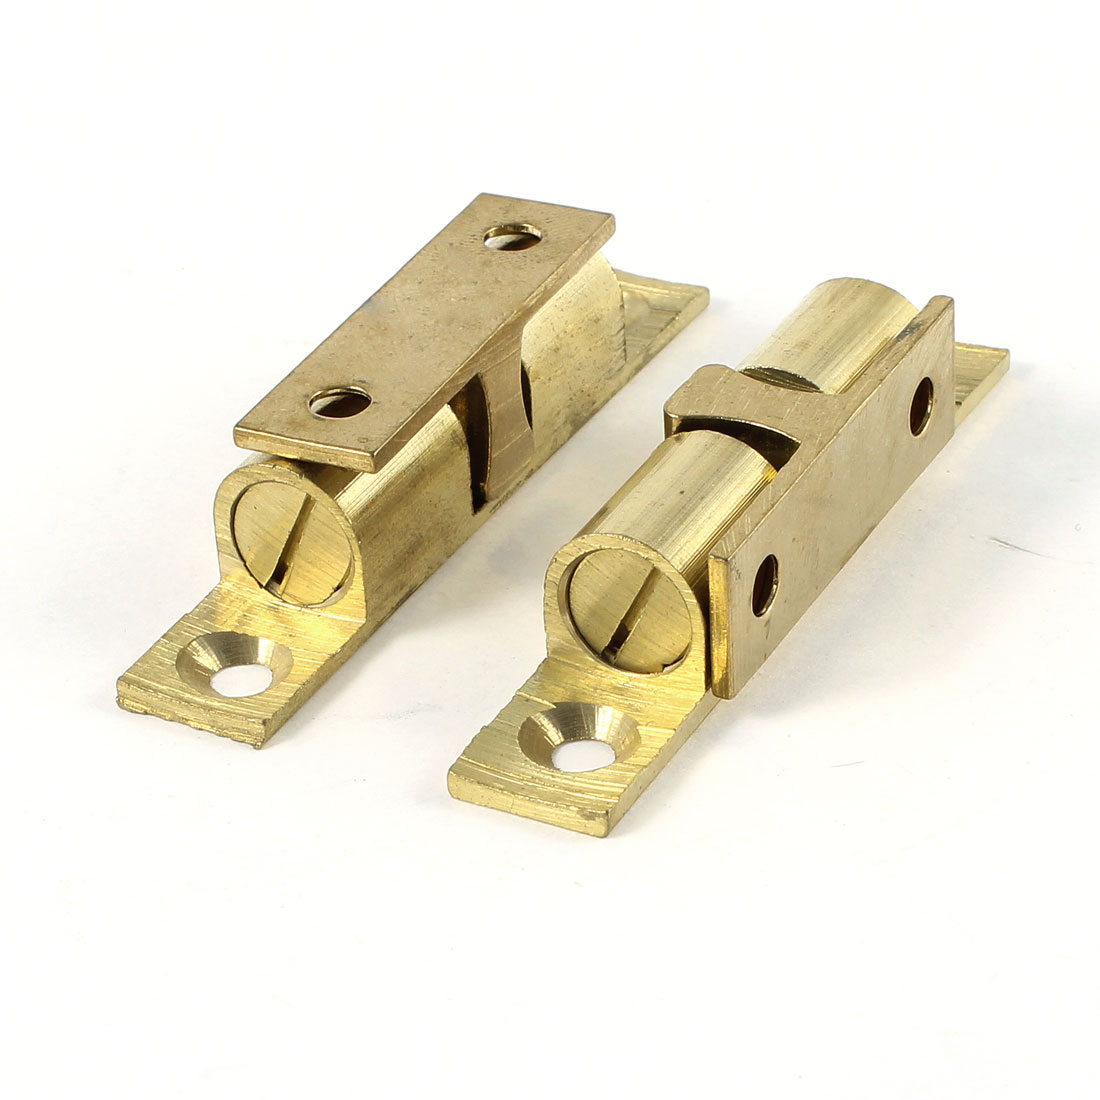 2PCS Cupboard Cabinet Door Brass Double Ball Catch 60mm Length